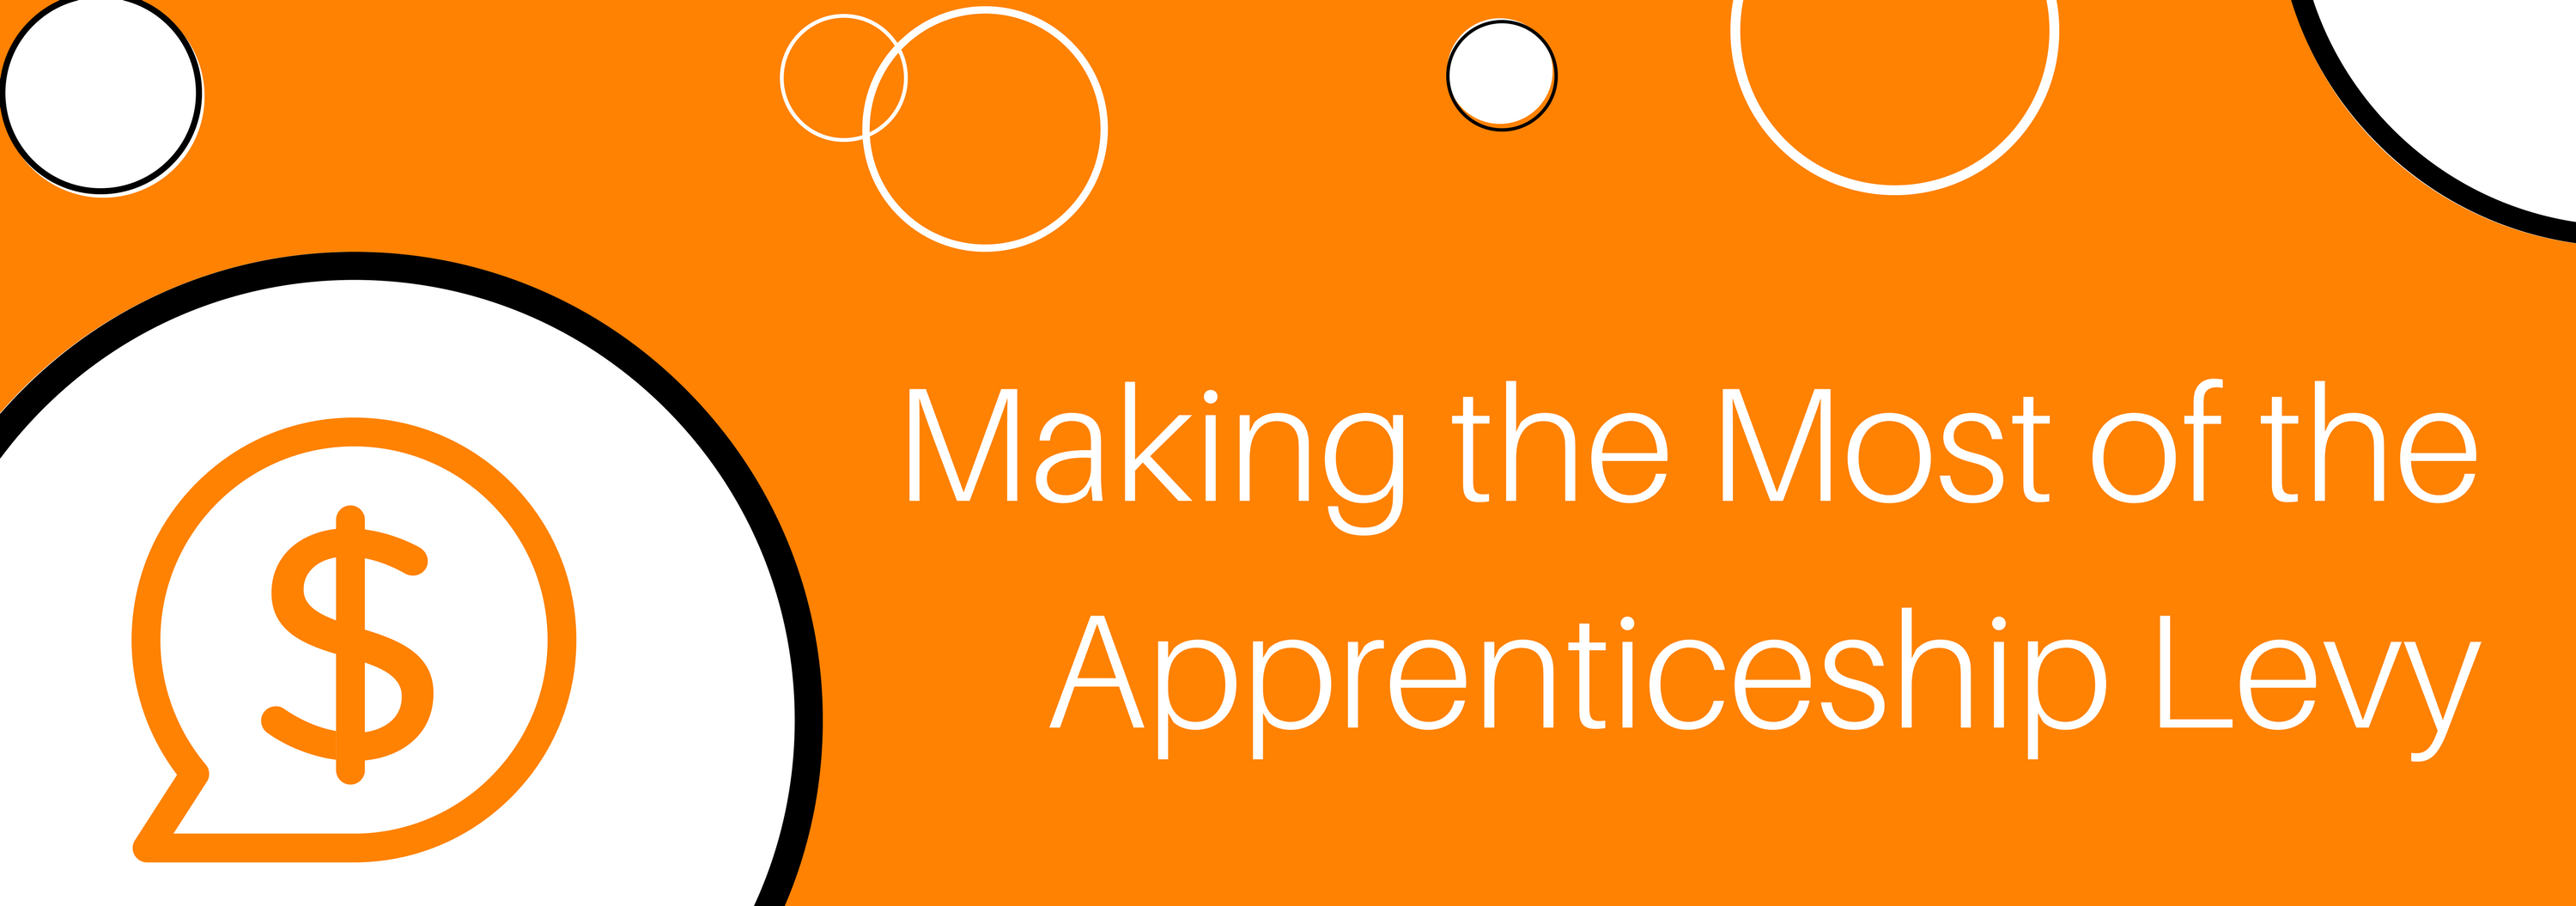 Making the most of the Apprenticeship Levy